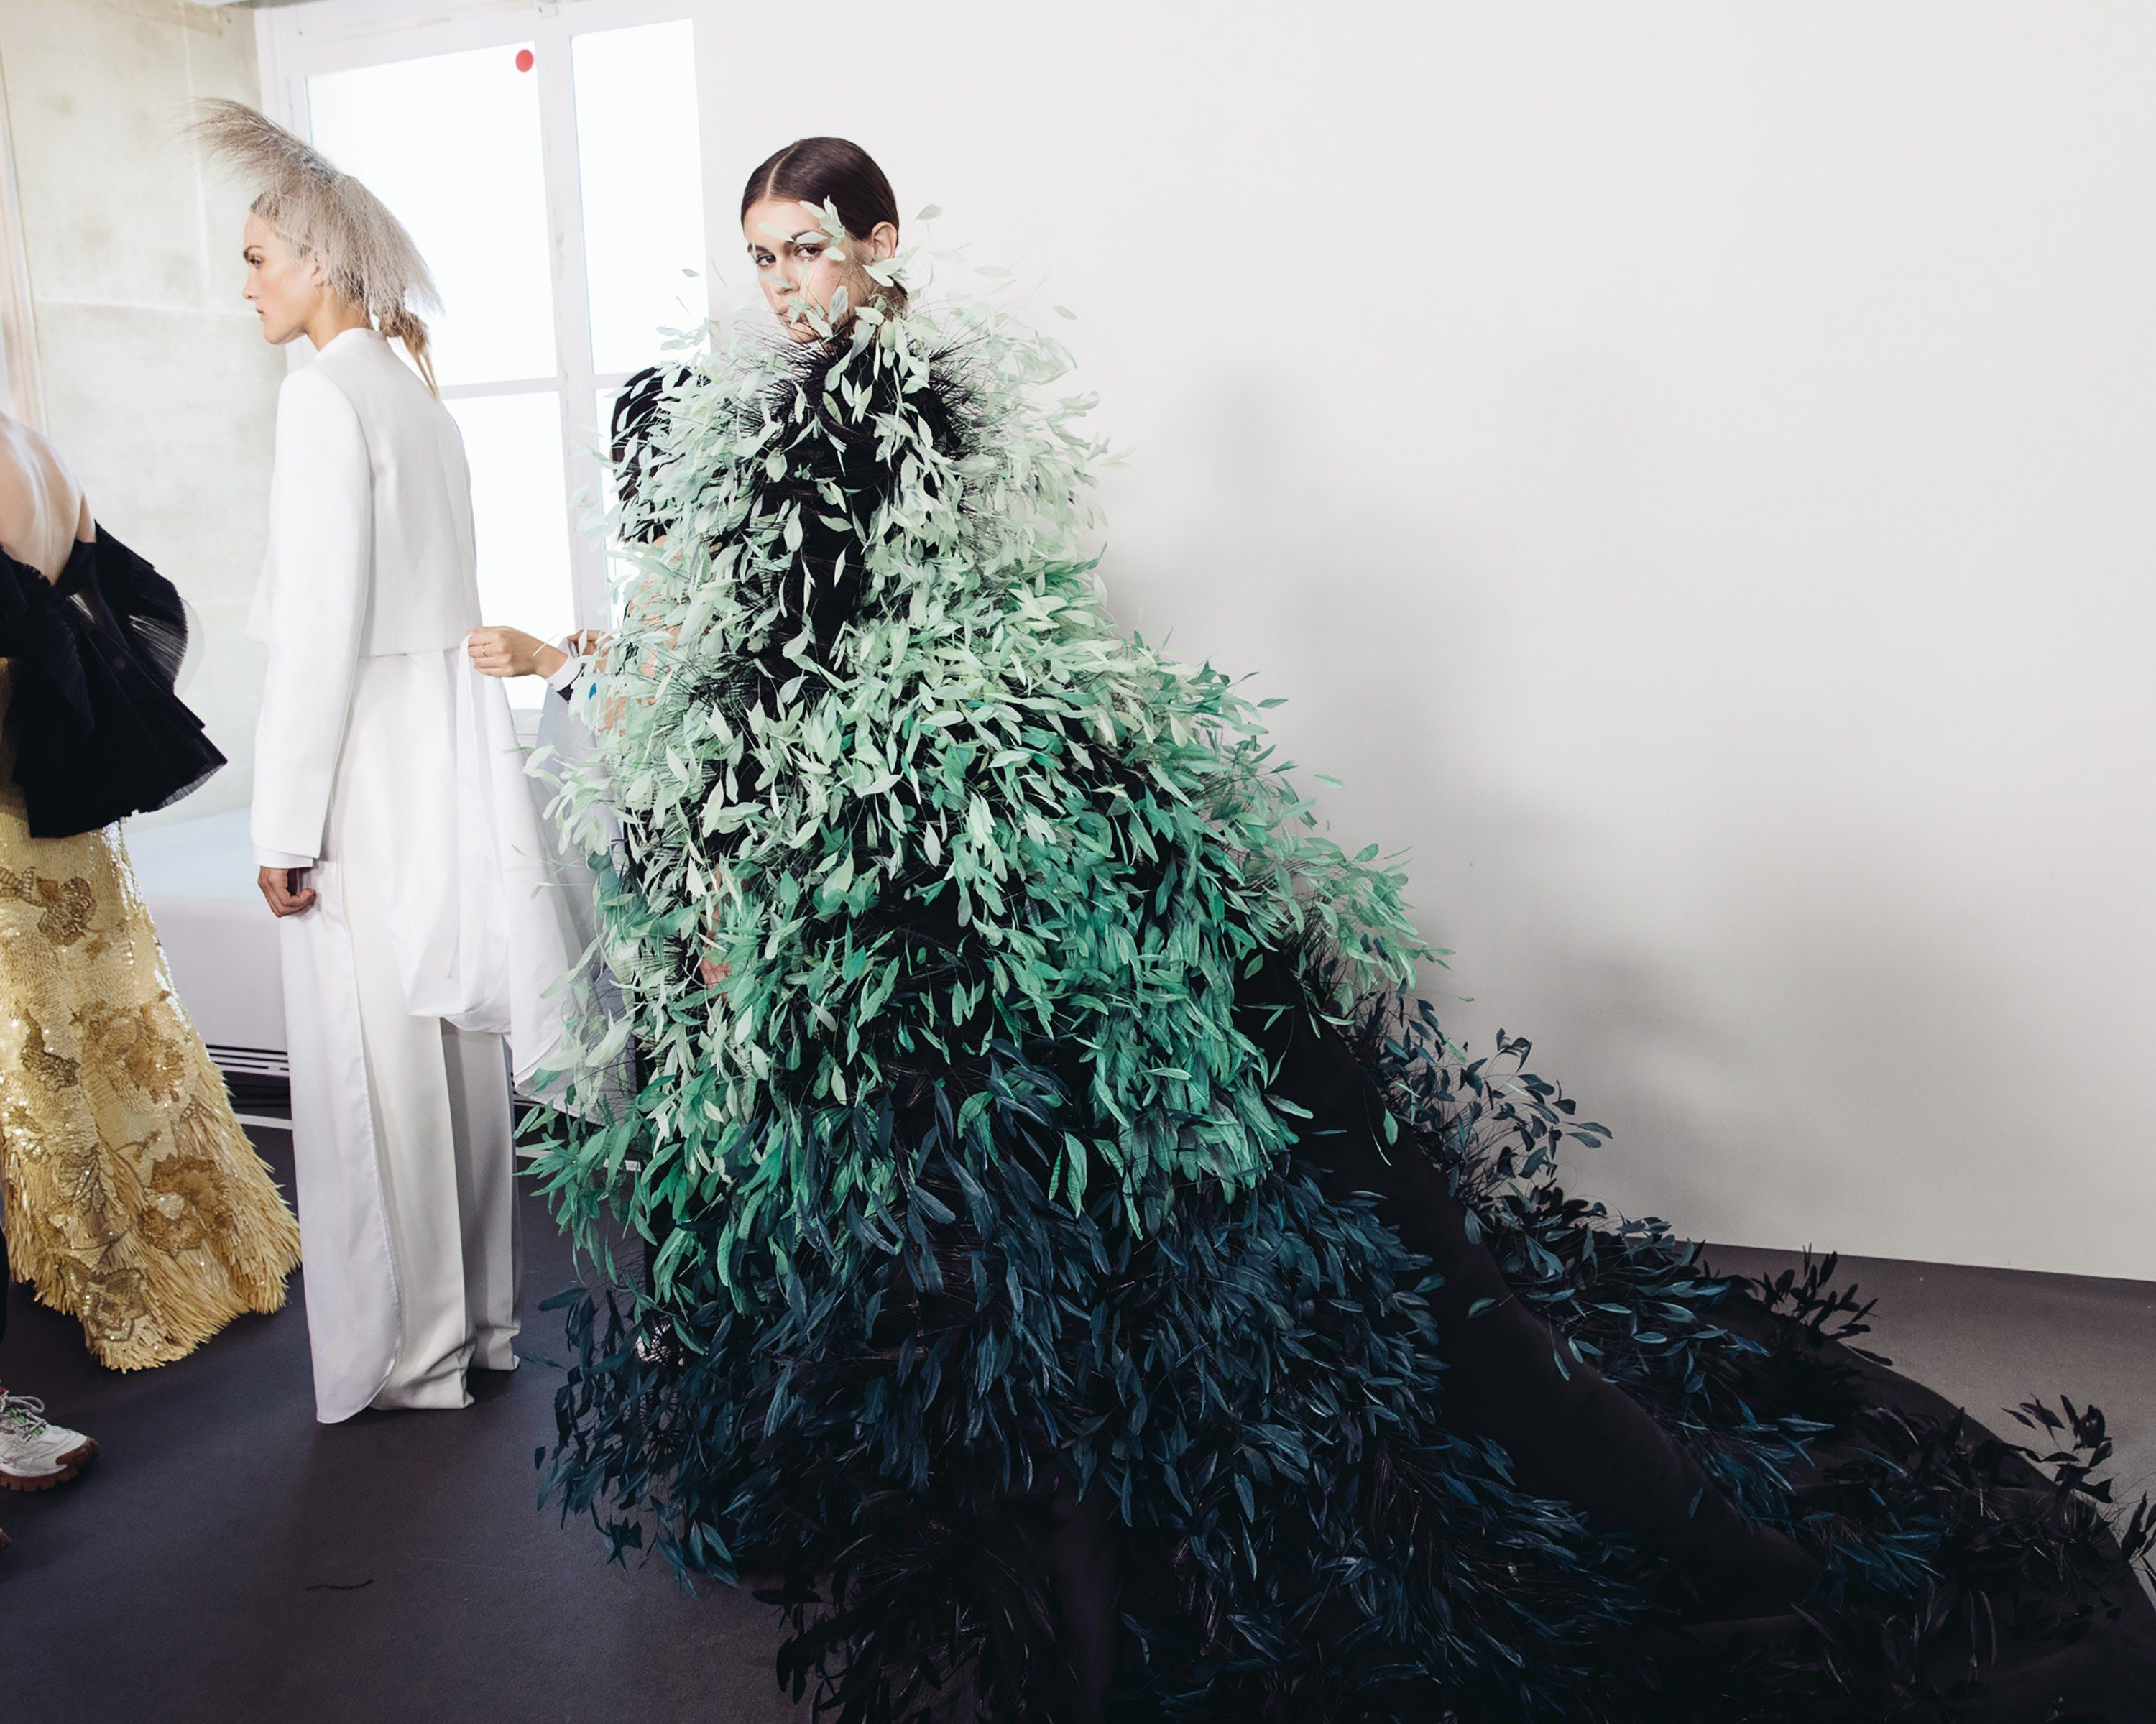 Corey Tenold S Best Backstage Photos From The Fall 2019 Couture Shows In Paris Glamour Fashion Couture Haute Couture Fashion